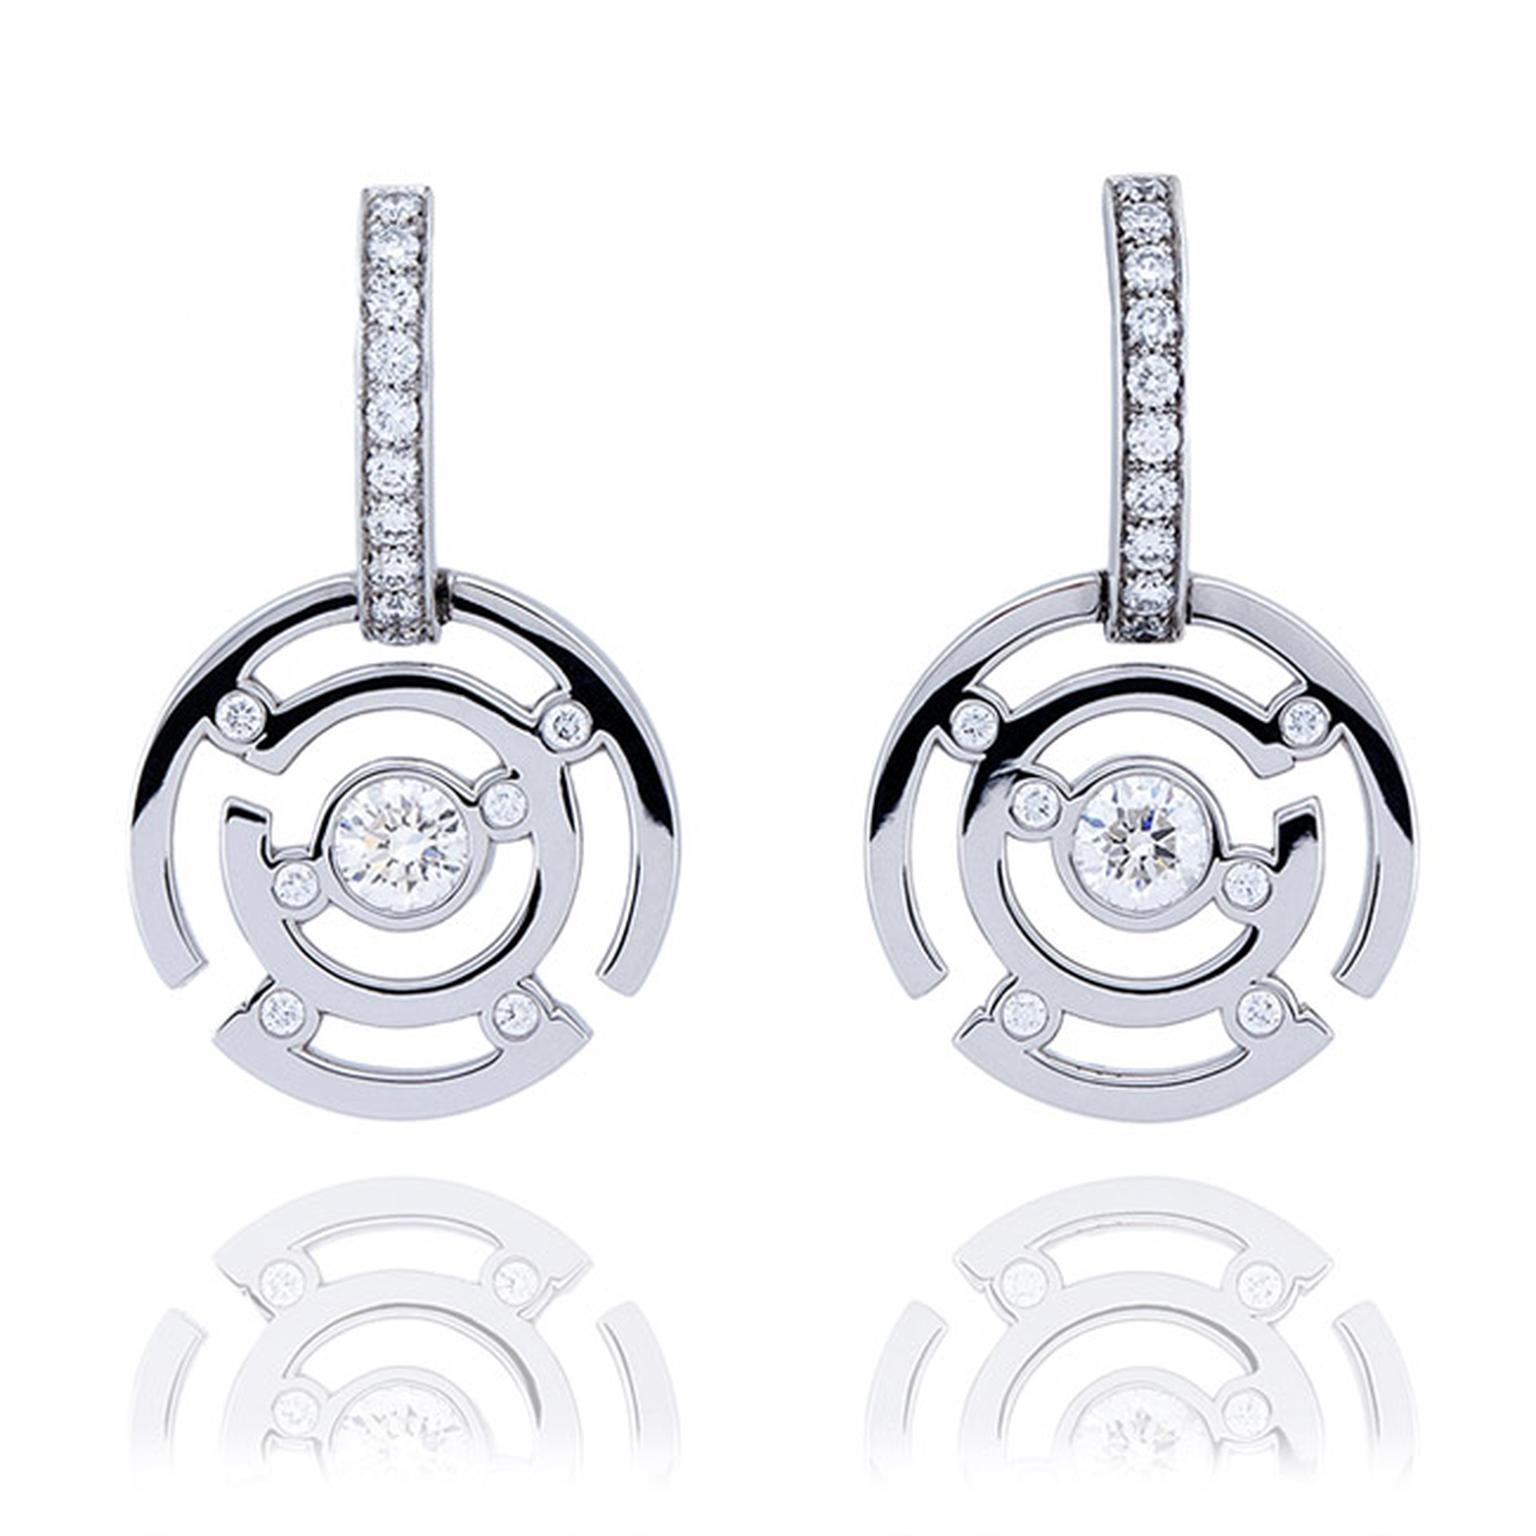 Boodles-Maze-WG-Earrings-main